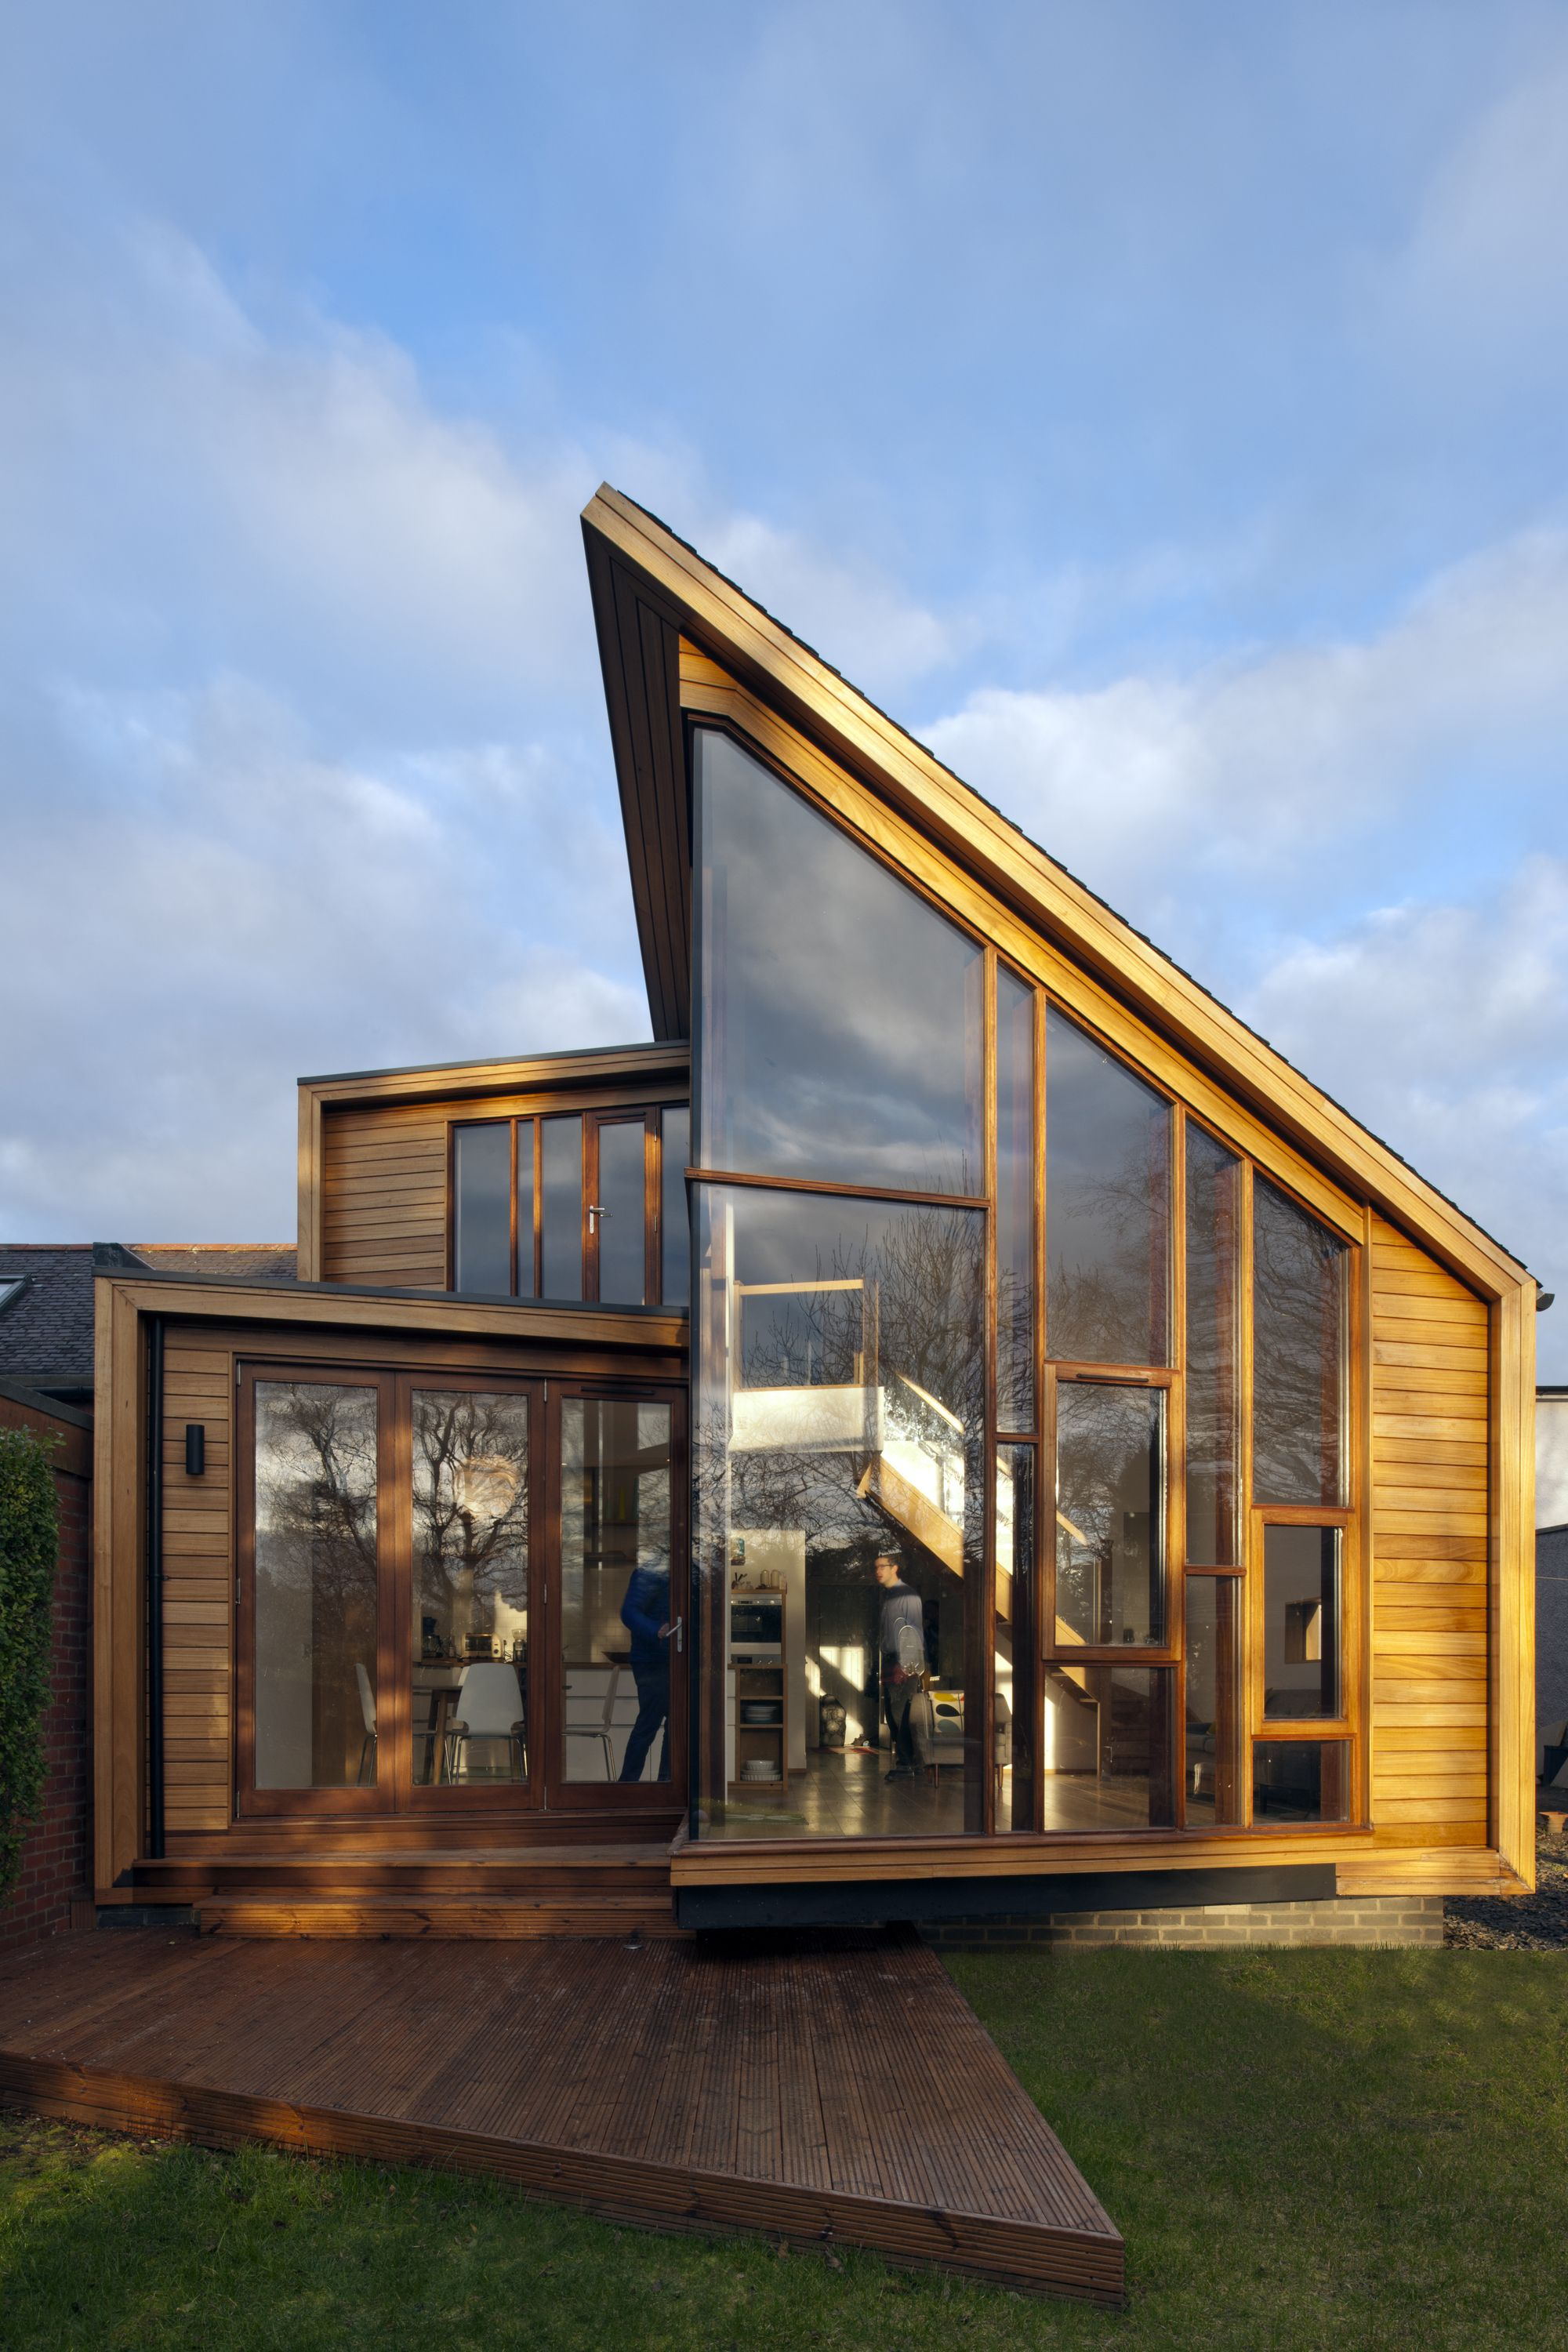 Gallery Of Solen Vinklar David Blaikie Architects 1 Architecture House Scandinavian Architecture House Extensions